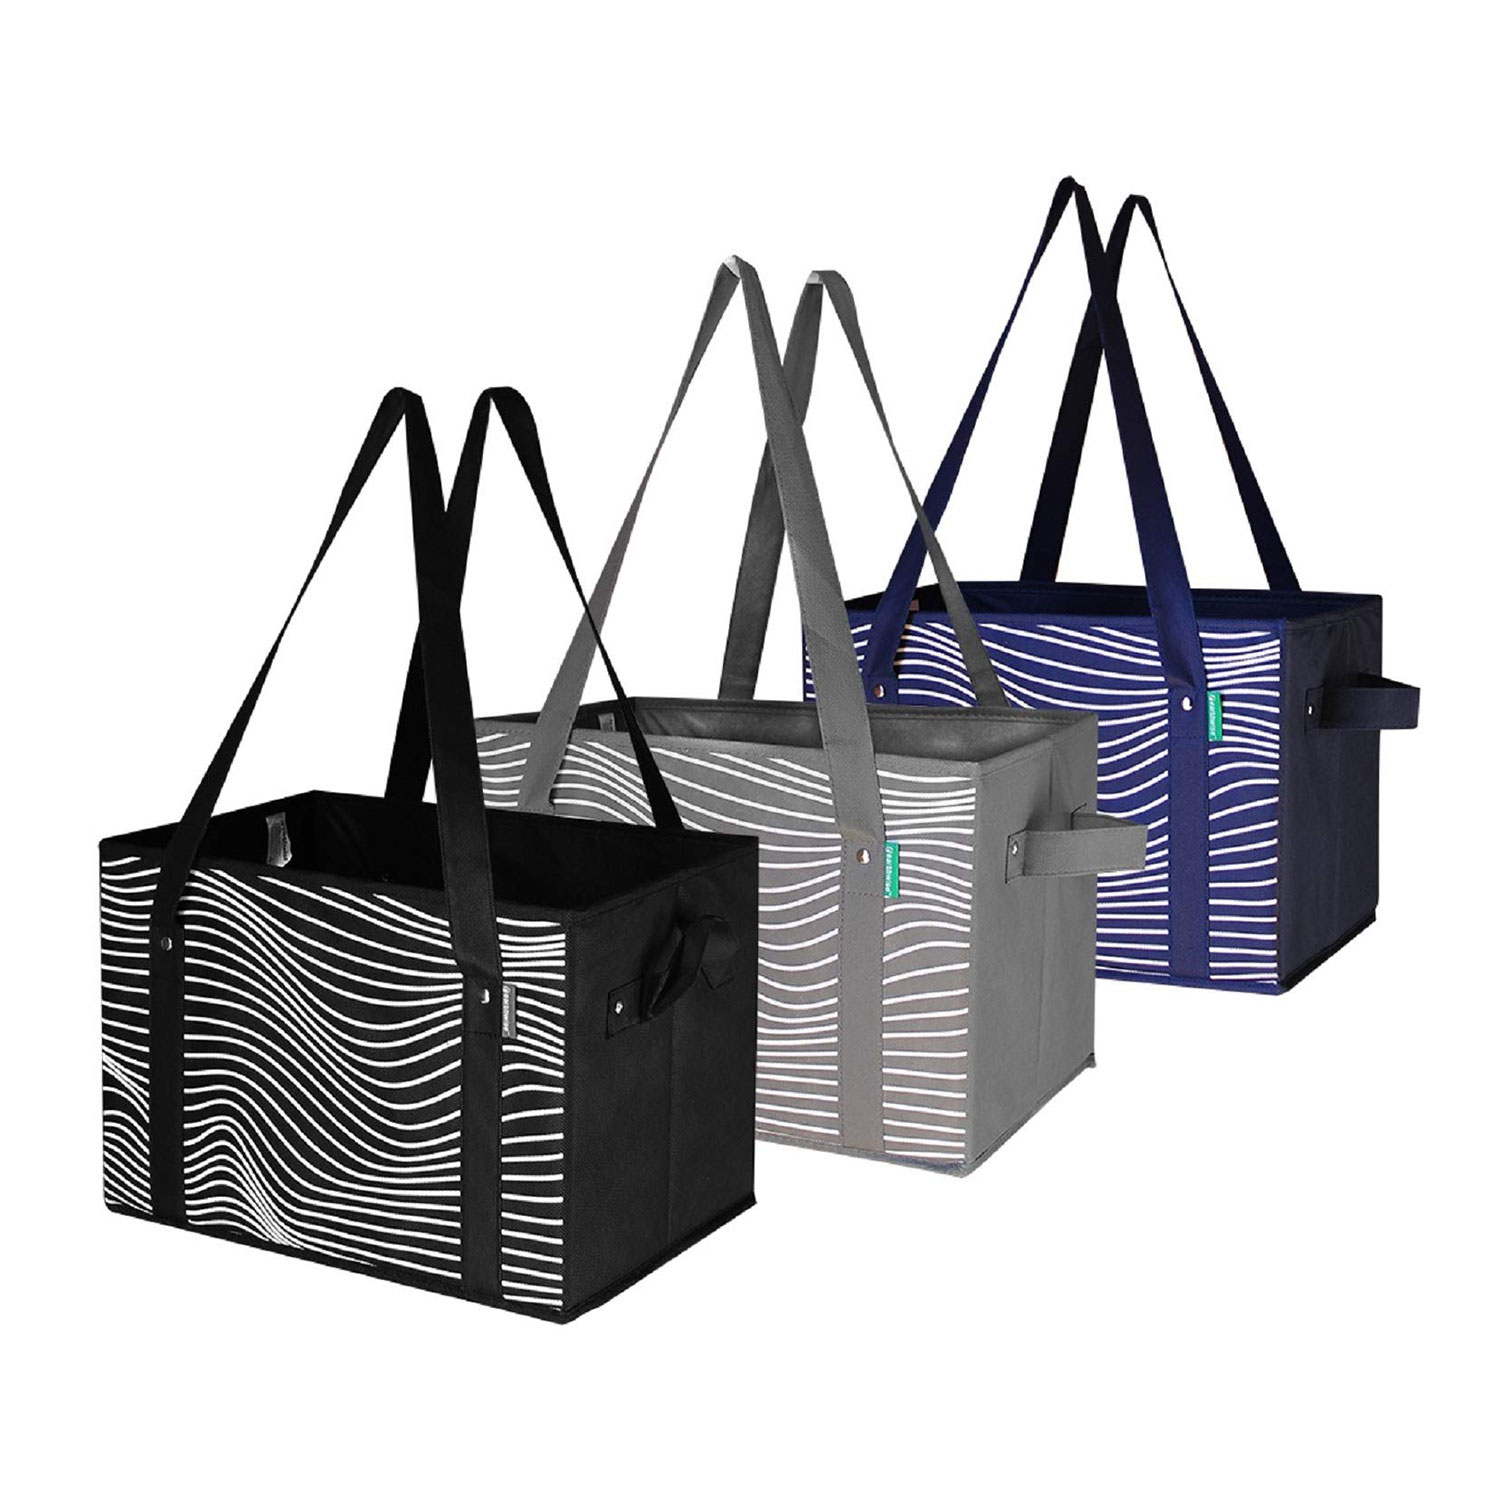 New Folding Pouch Grocery Bag Shopping Tote Eco Storage Reusable Bag Travel Gift